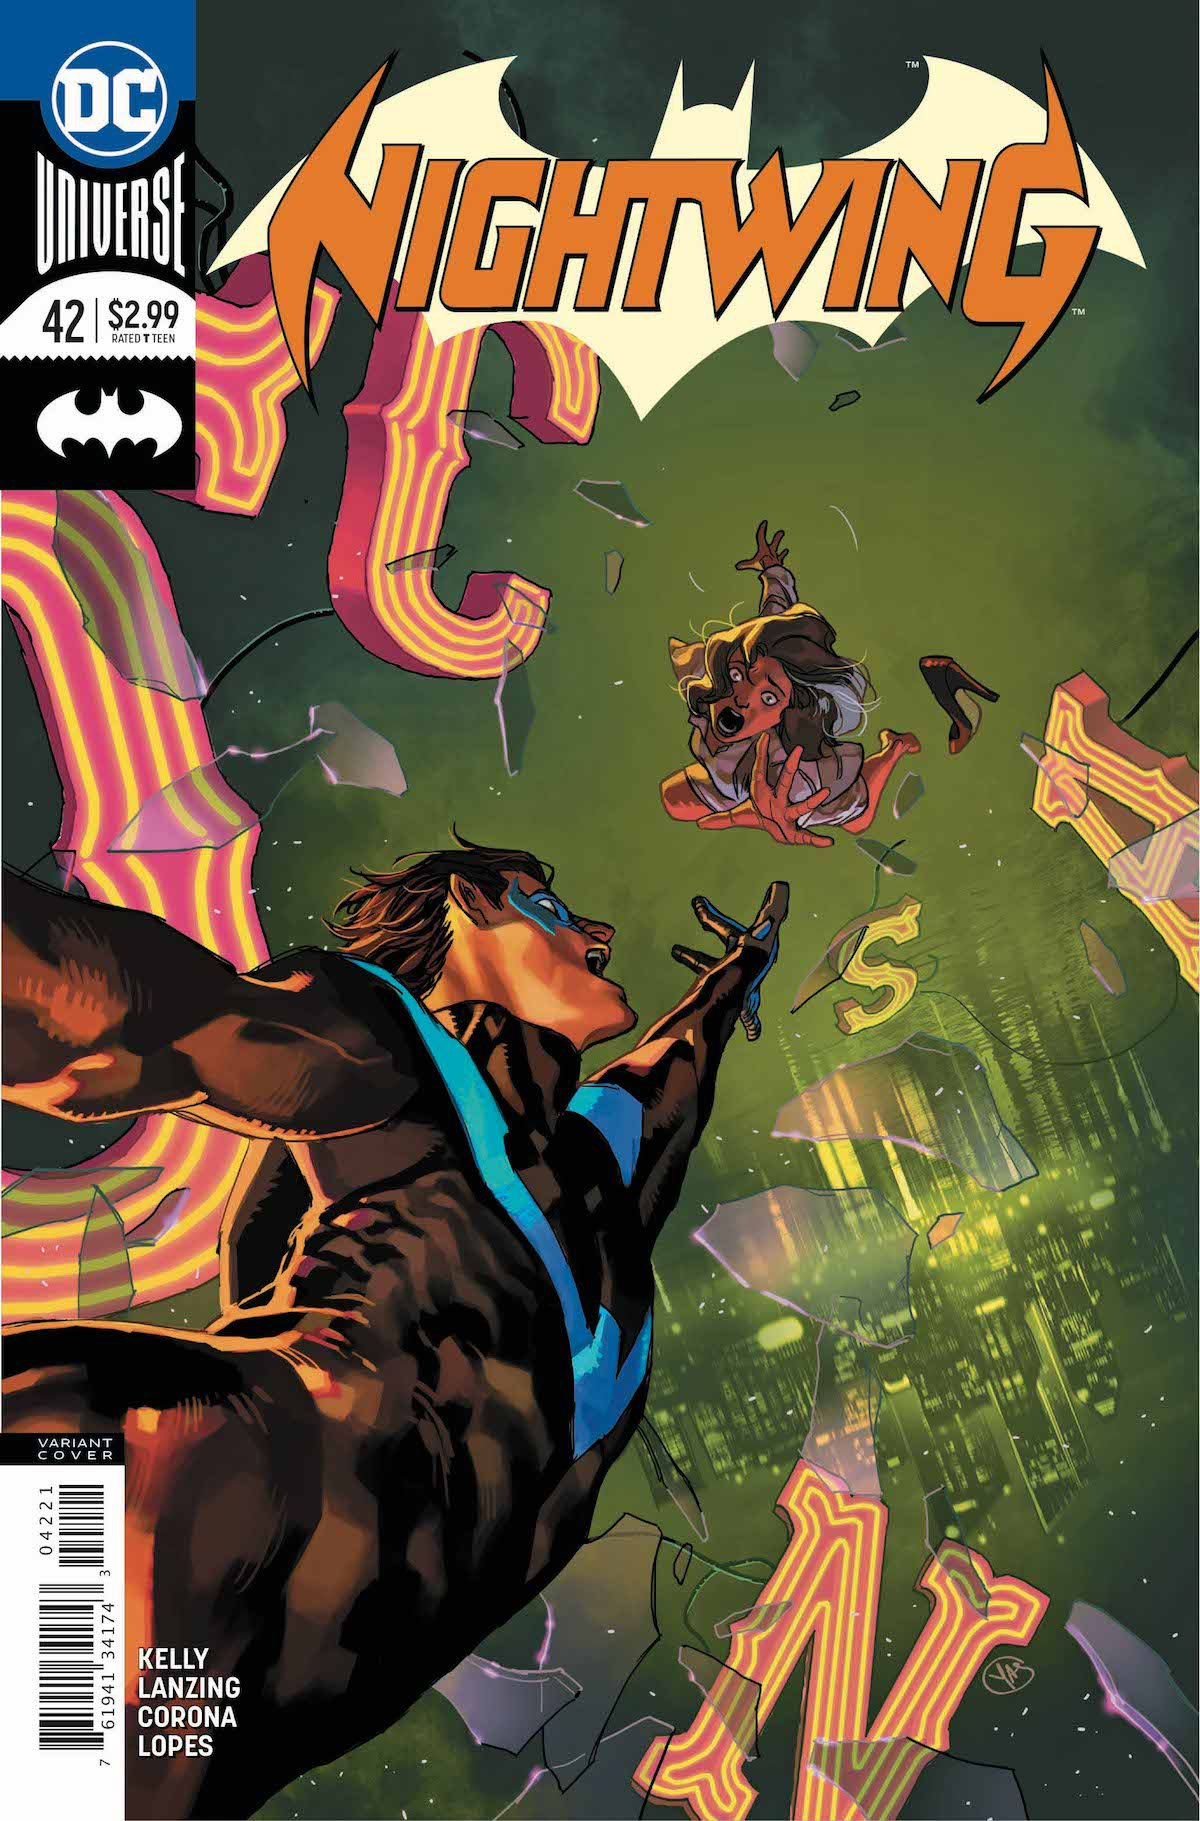 Nightwing #42 variant cover